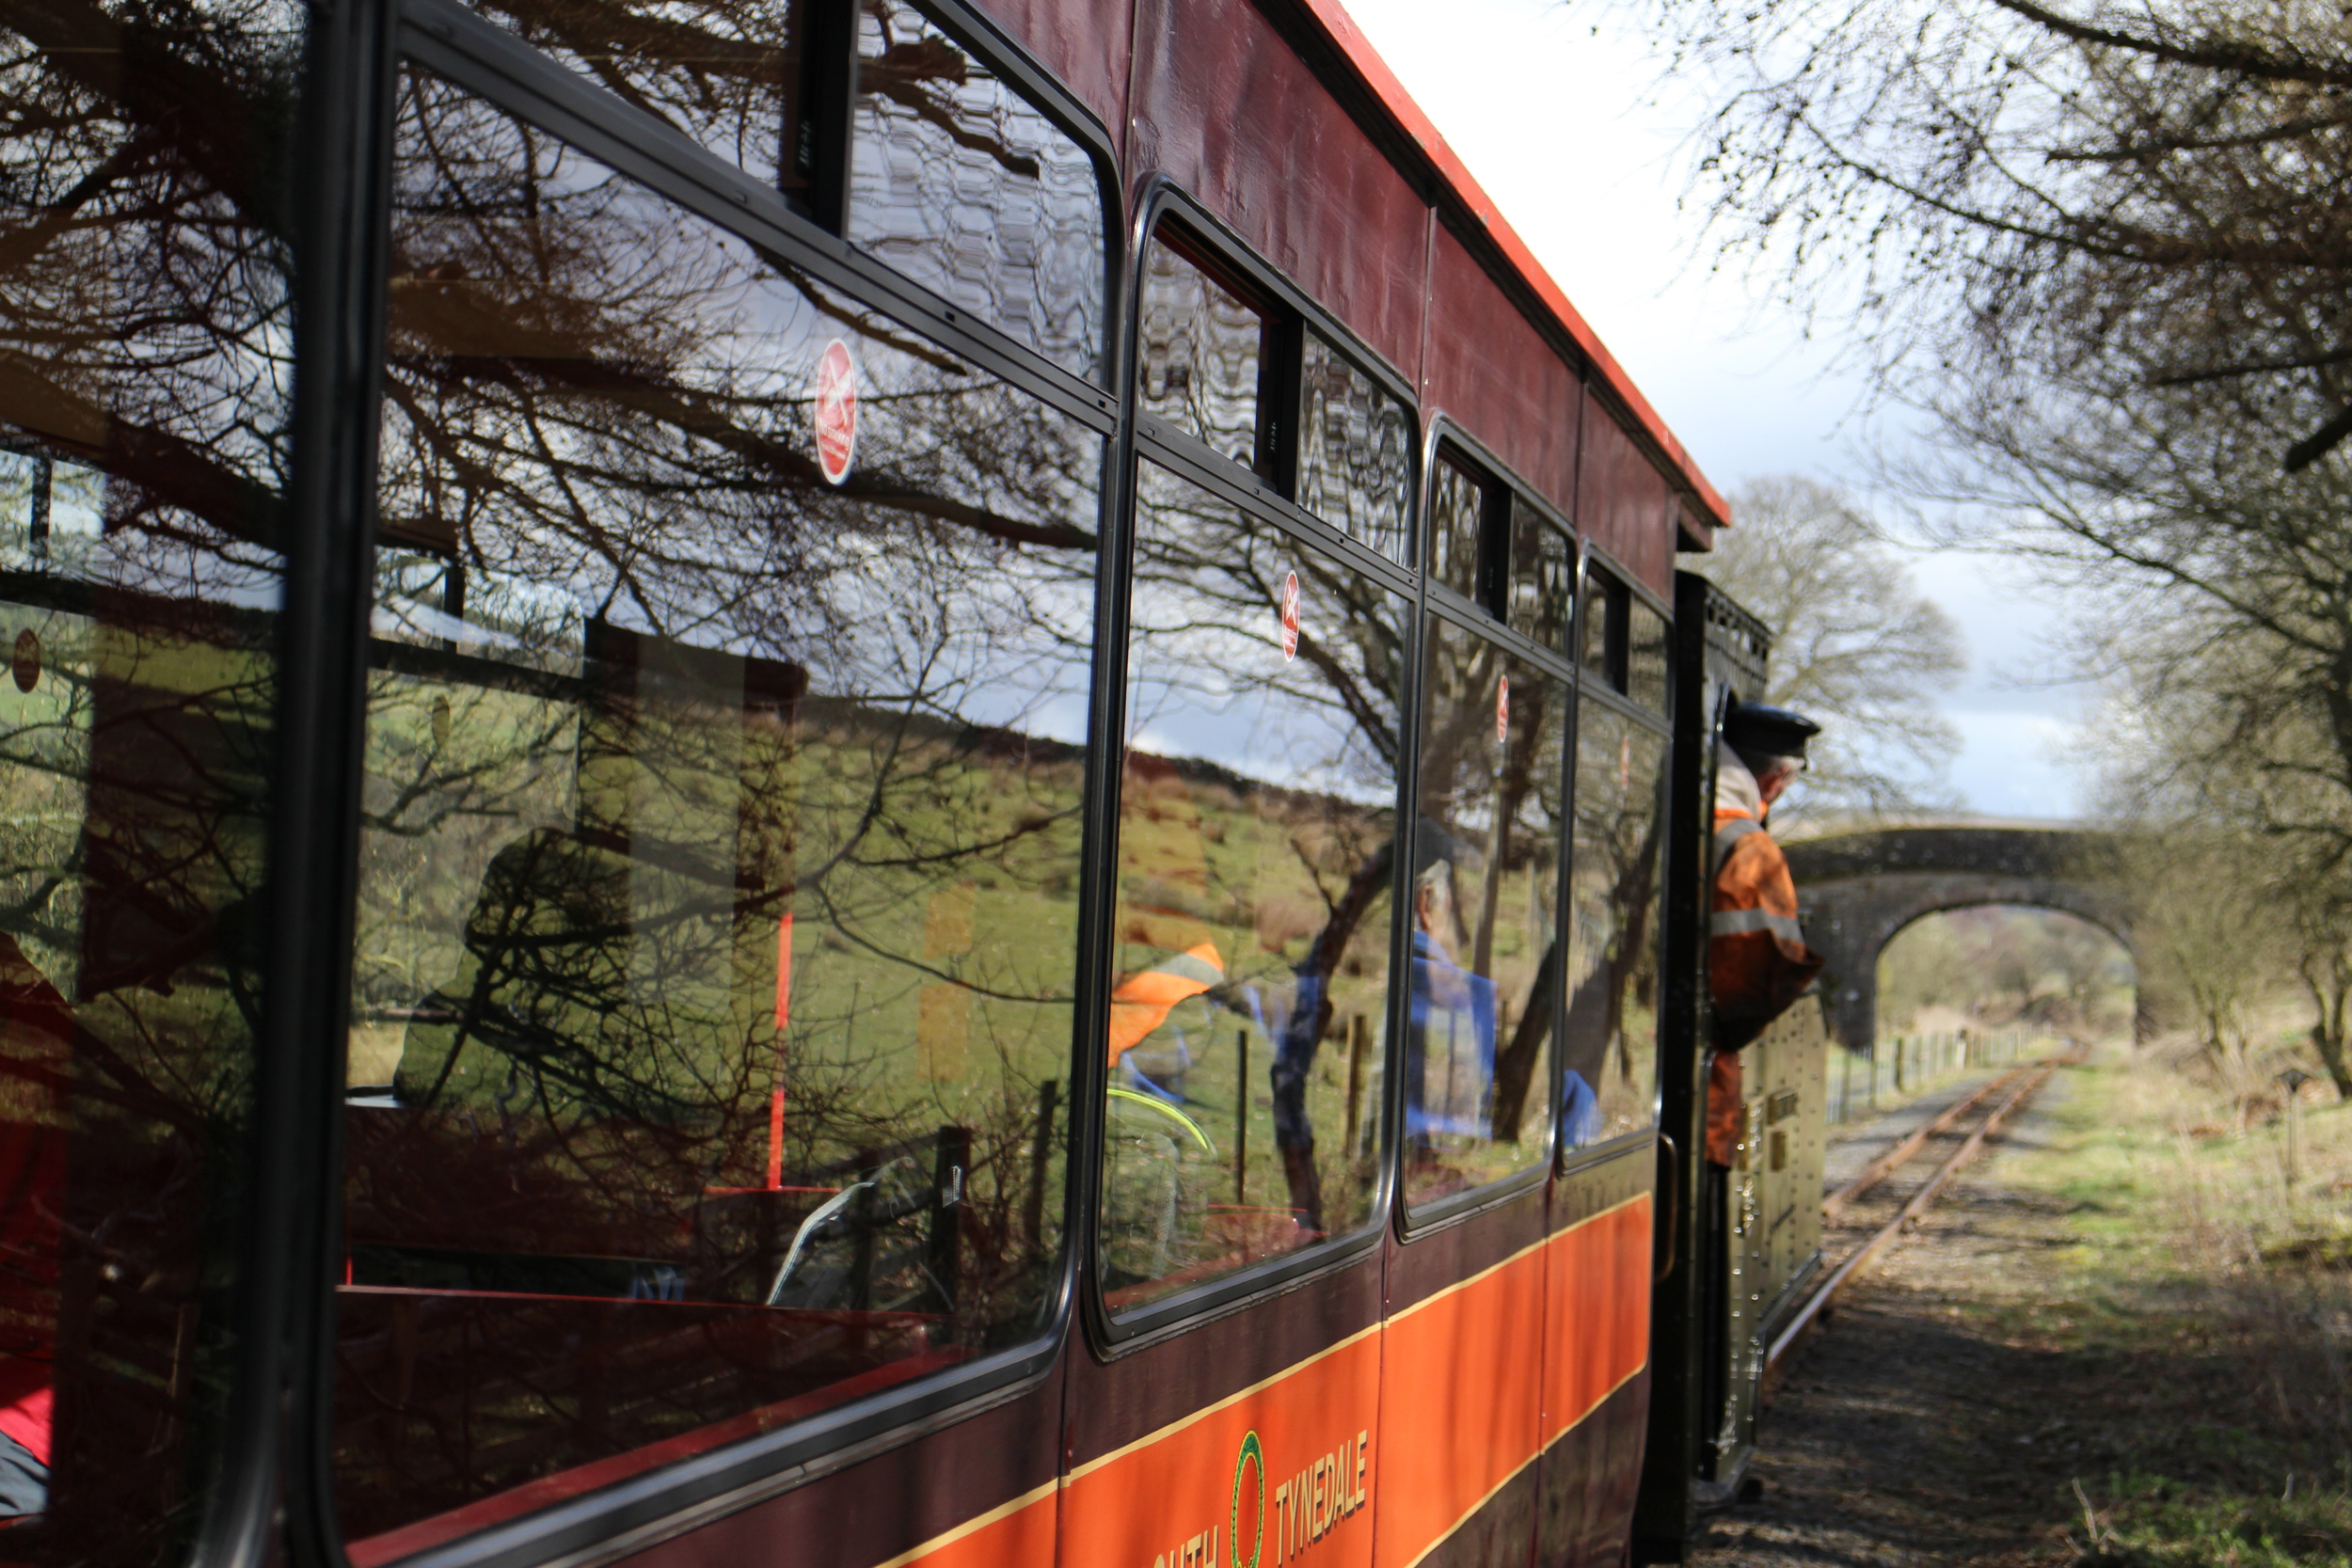 All aboard the South Tynedale steam train